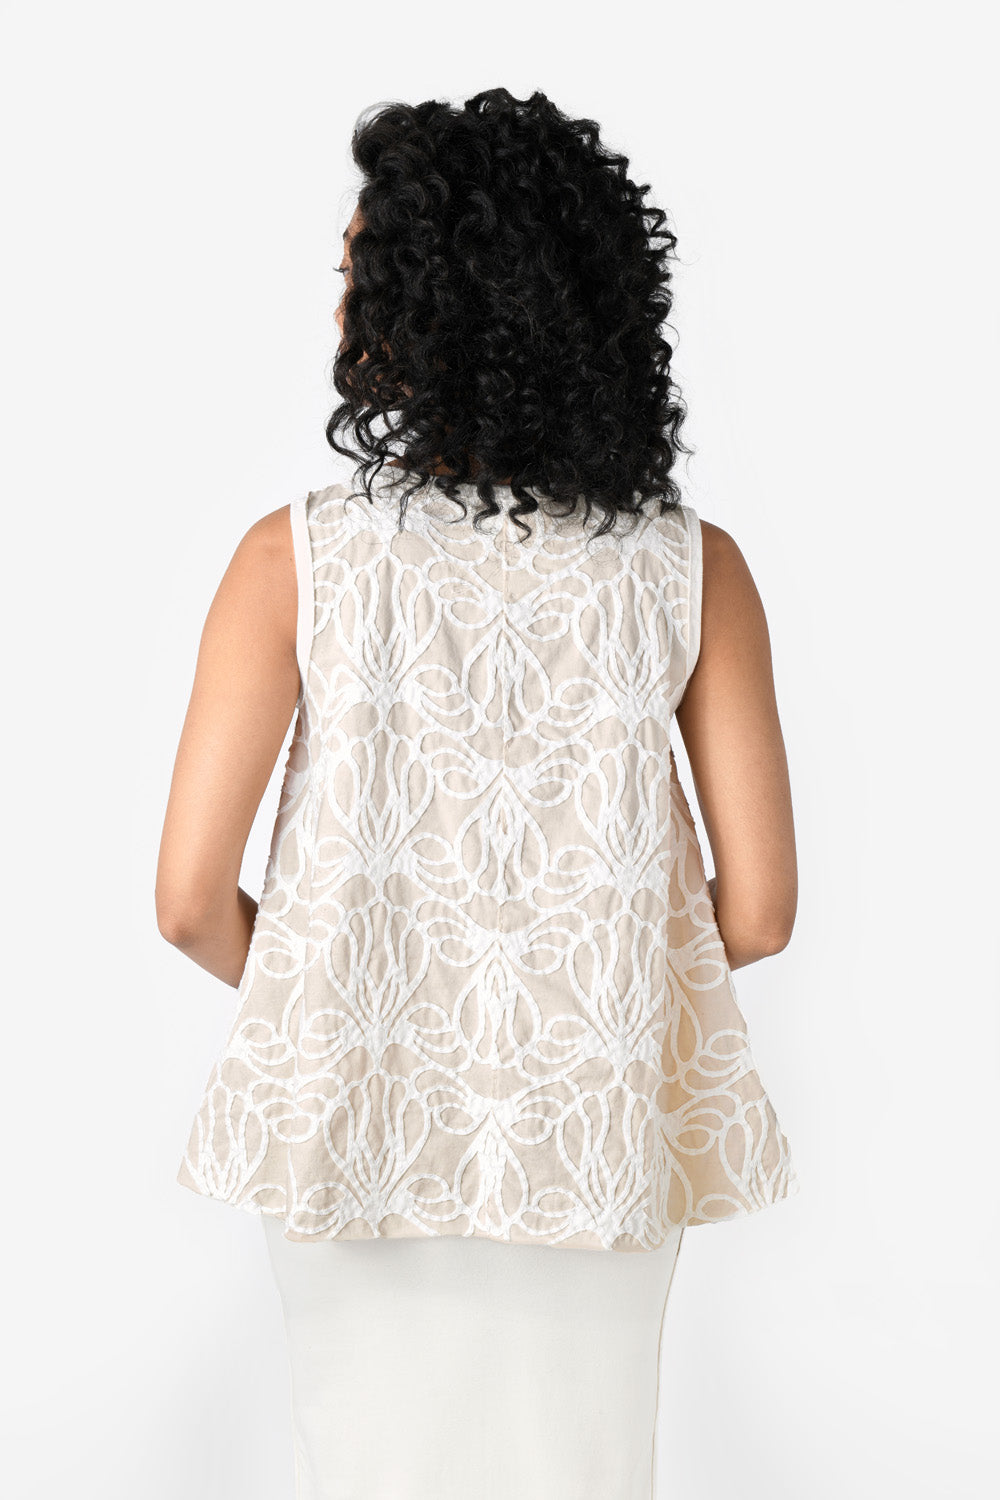 alabama chanin lucy eileen top with white floral pattern on model